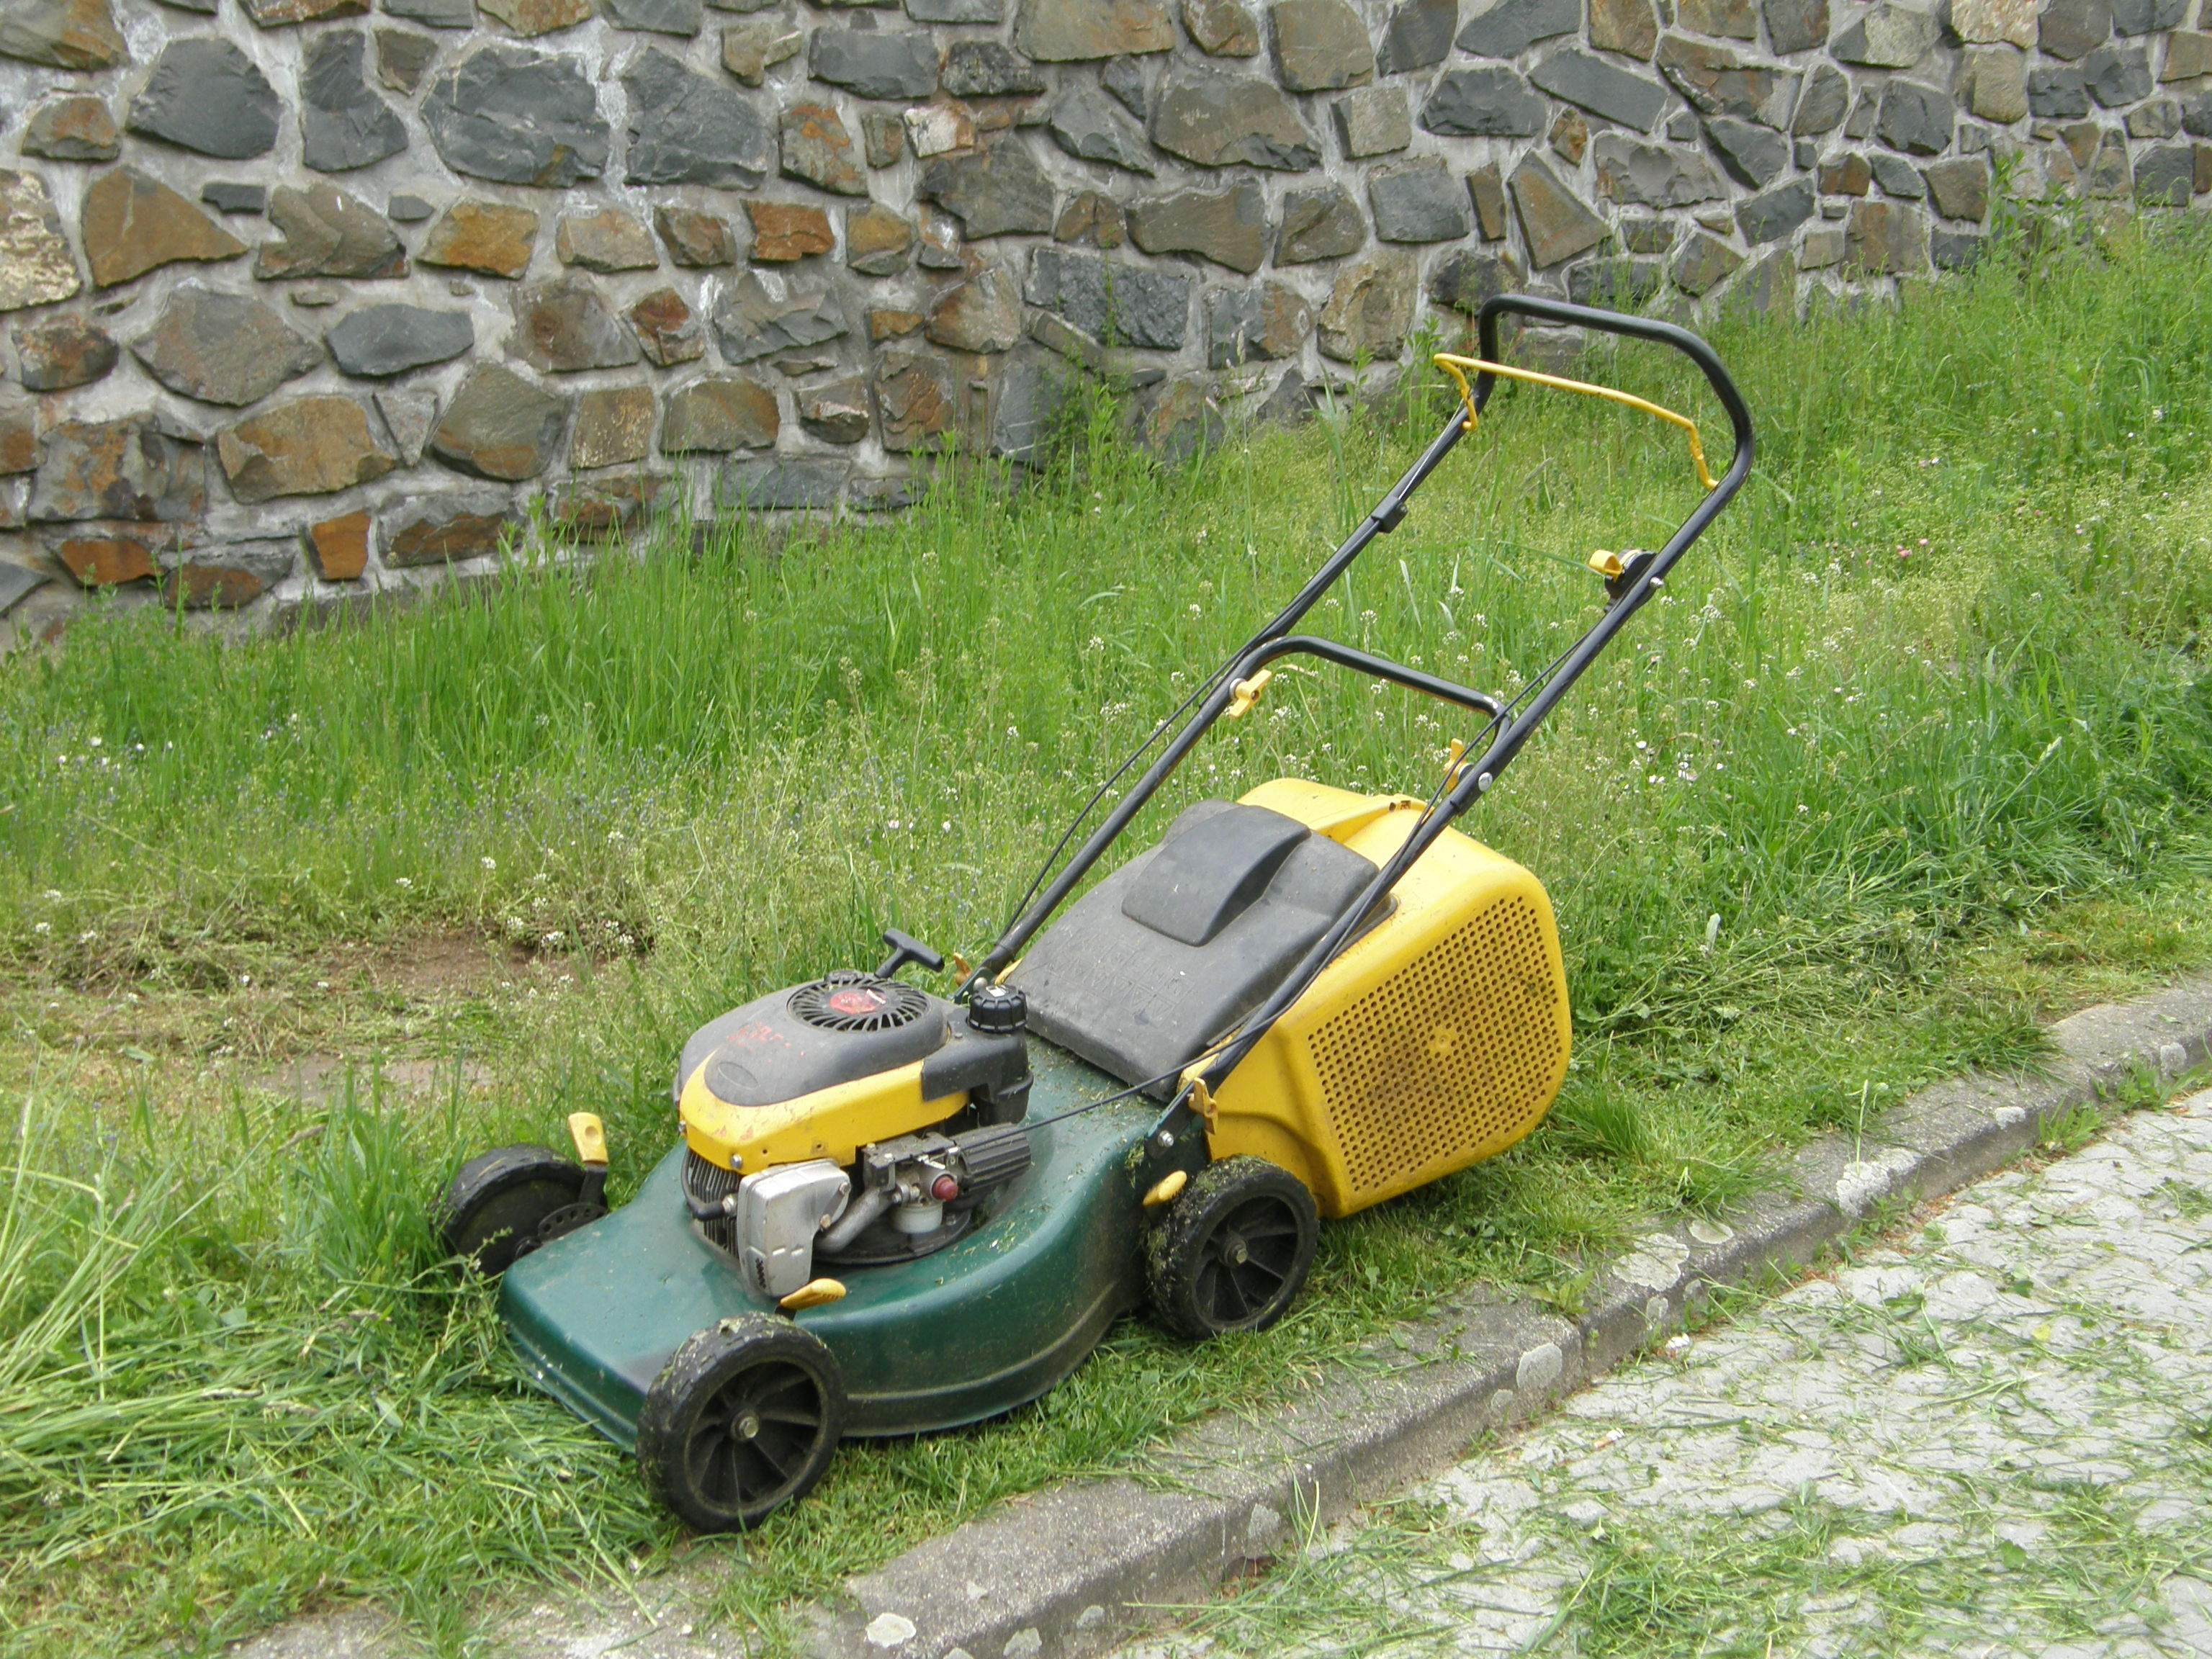 Lawnmower Select - Lawn Mowers - Lawn Mower Information and Guide